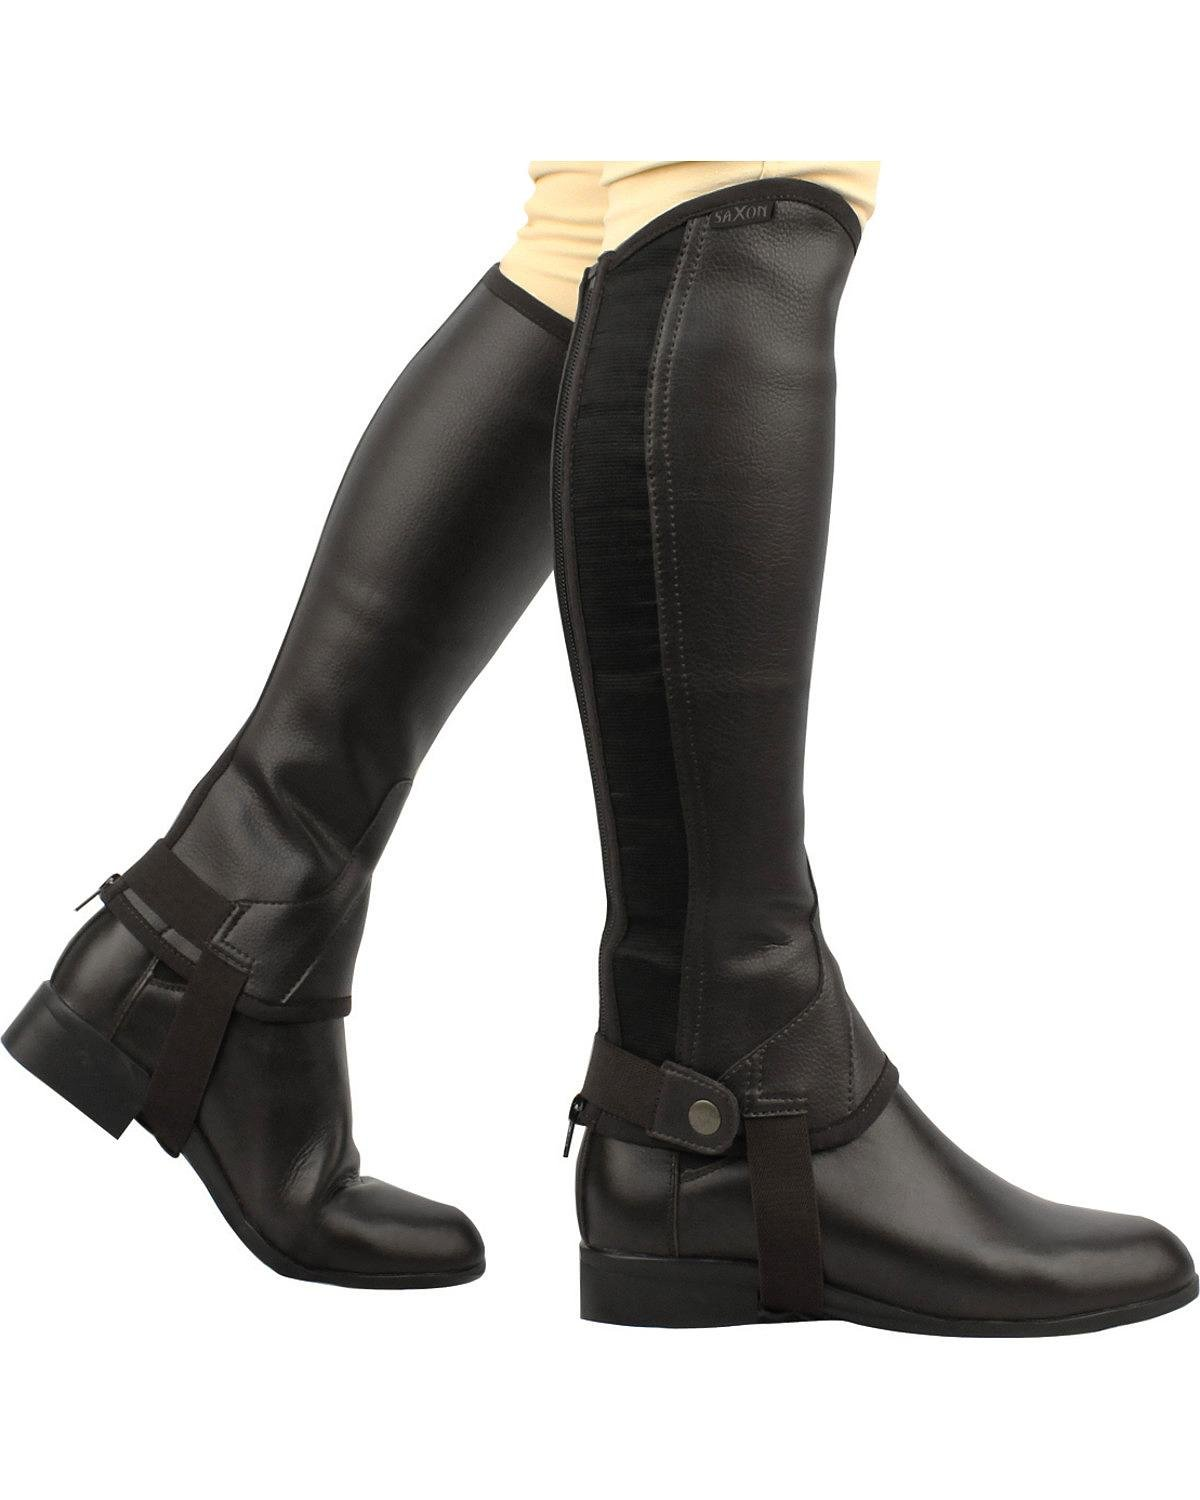 Saxon Botas de Mujer Equileather Tipo zahones, Talla XS, Color Negro Tjernlund Products Inc. 514357